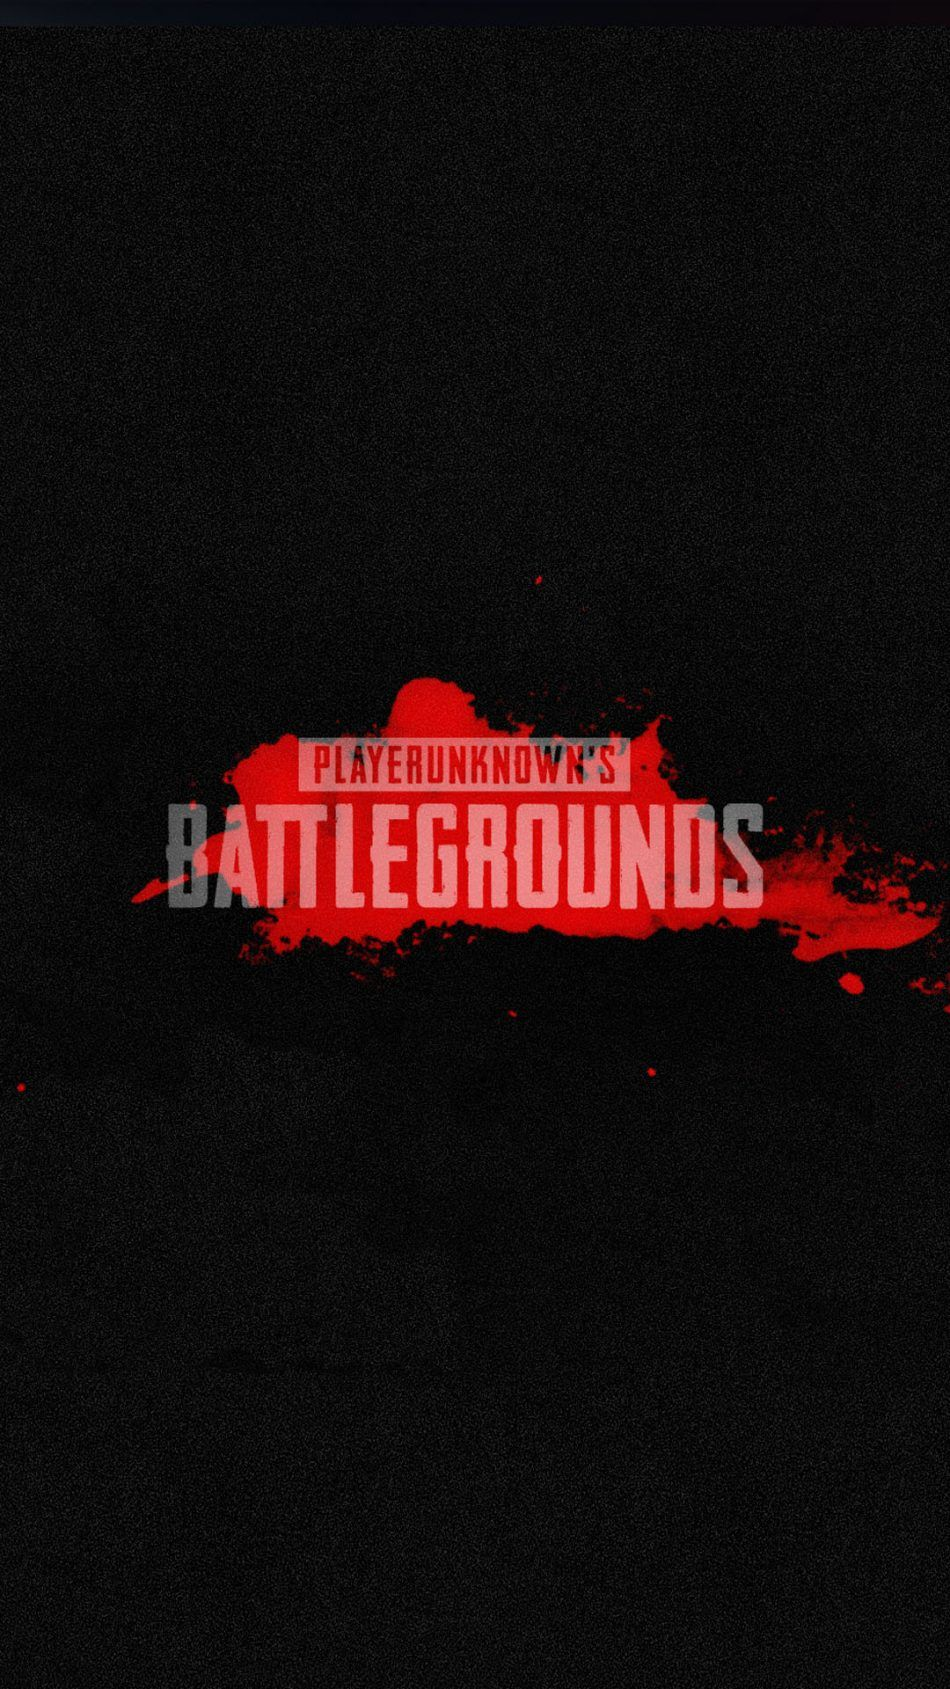 battlegrounds 2160x1920 dual monitor